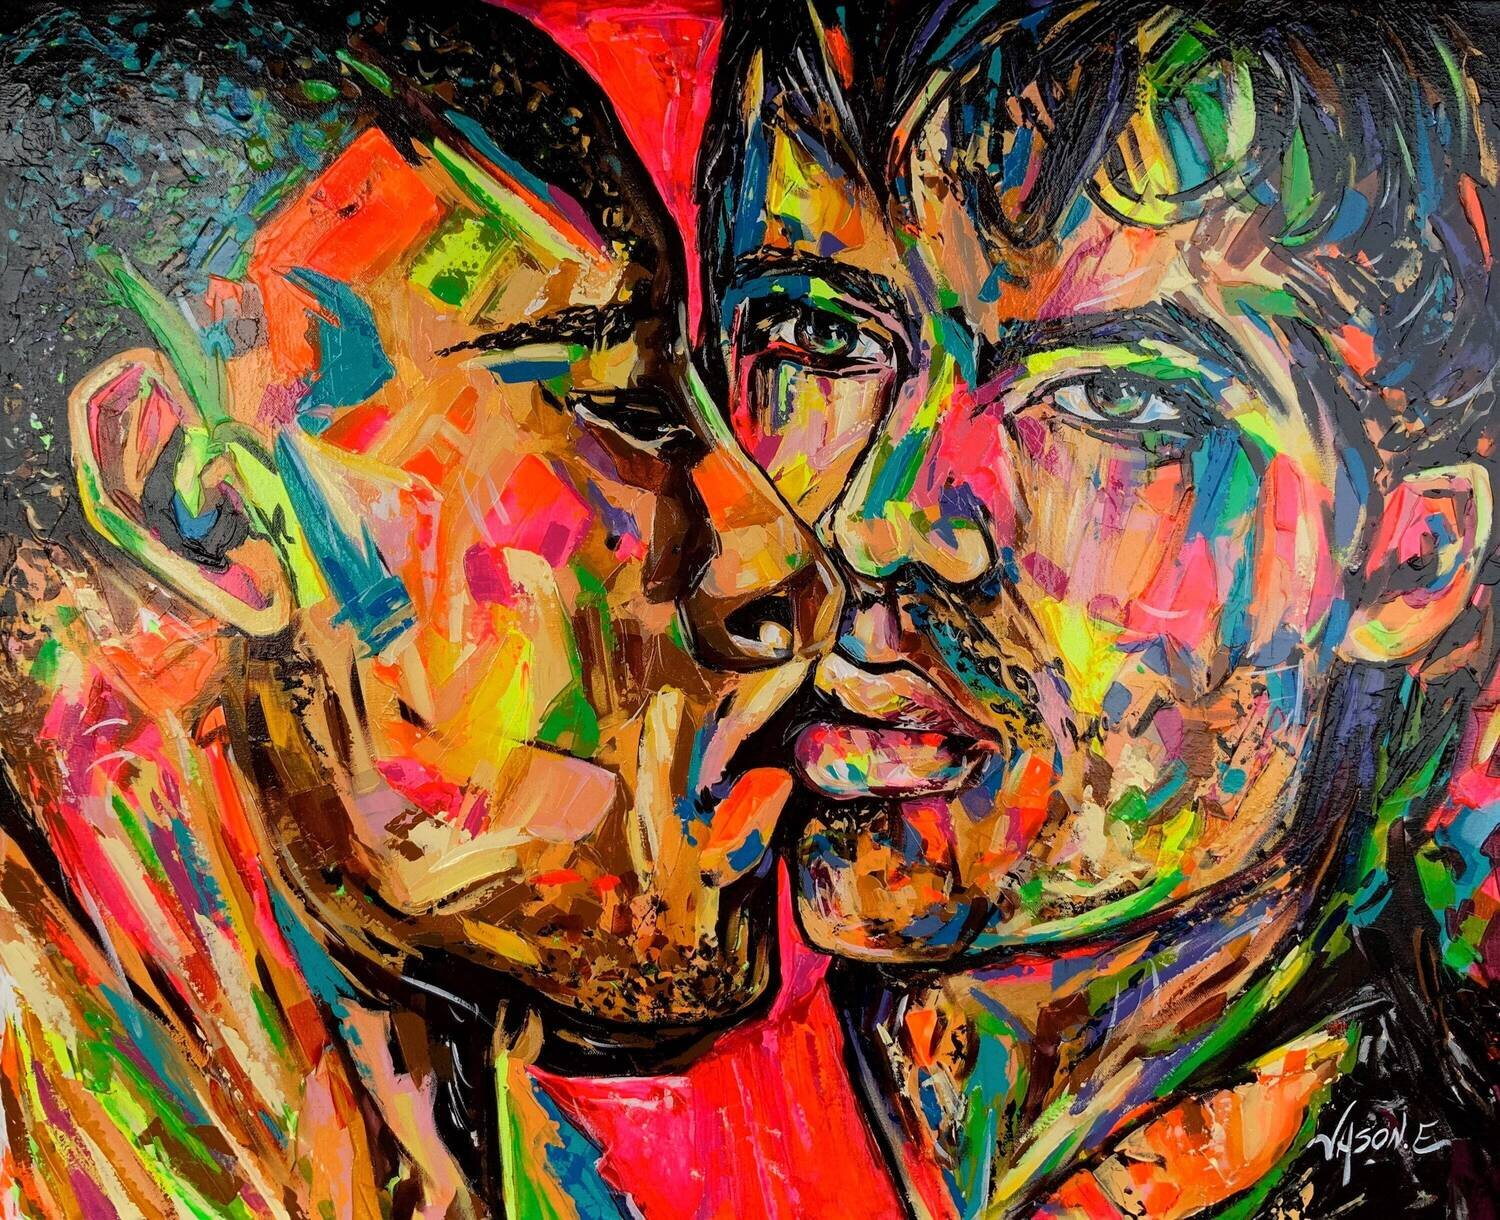 Gay Couple Modern Abstract Homosexual Painting on Canvas GAY Pride LGBTQ